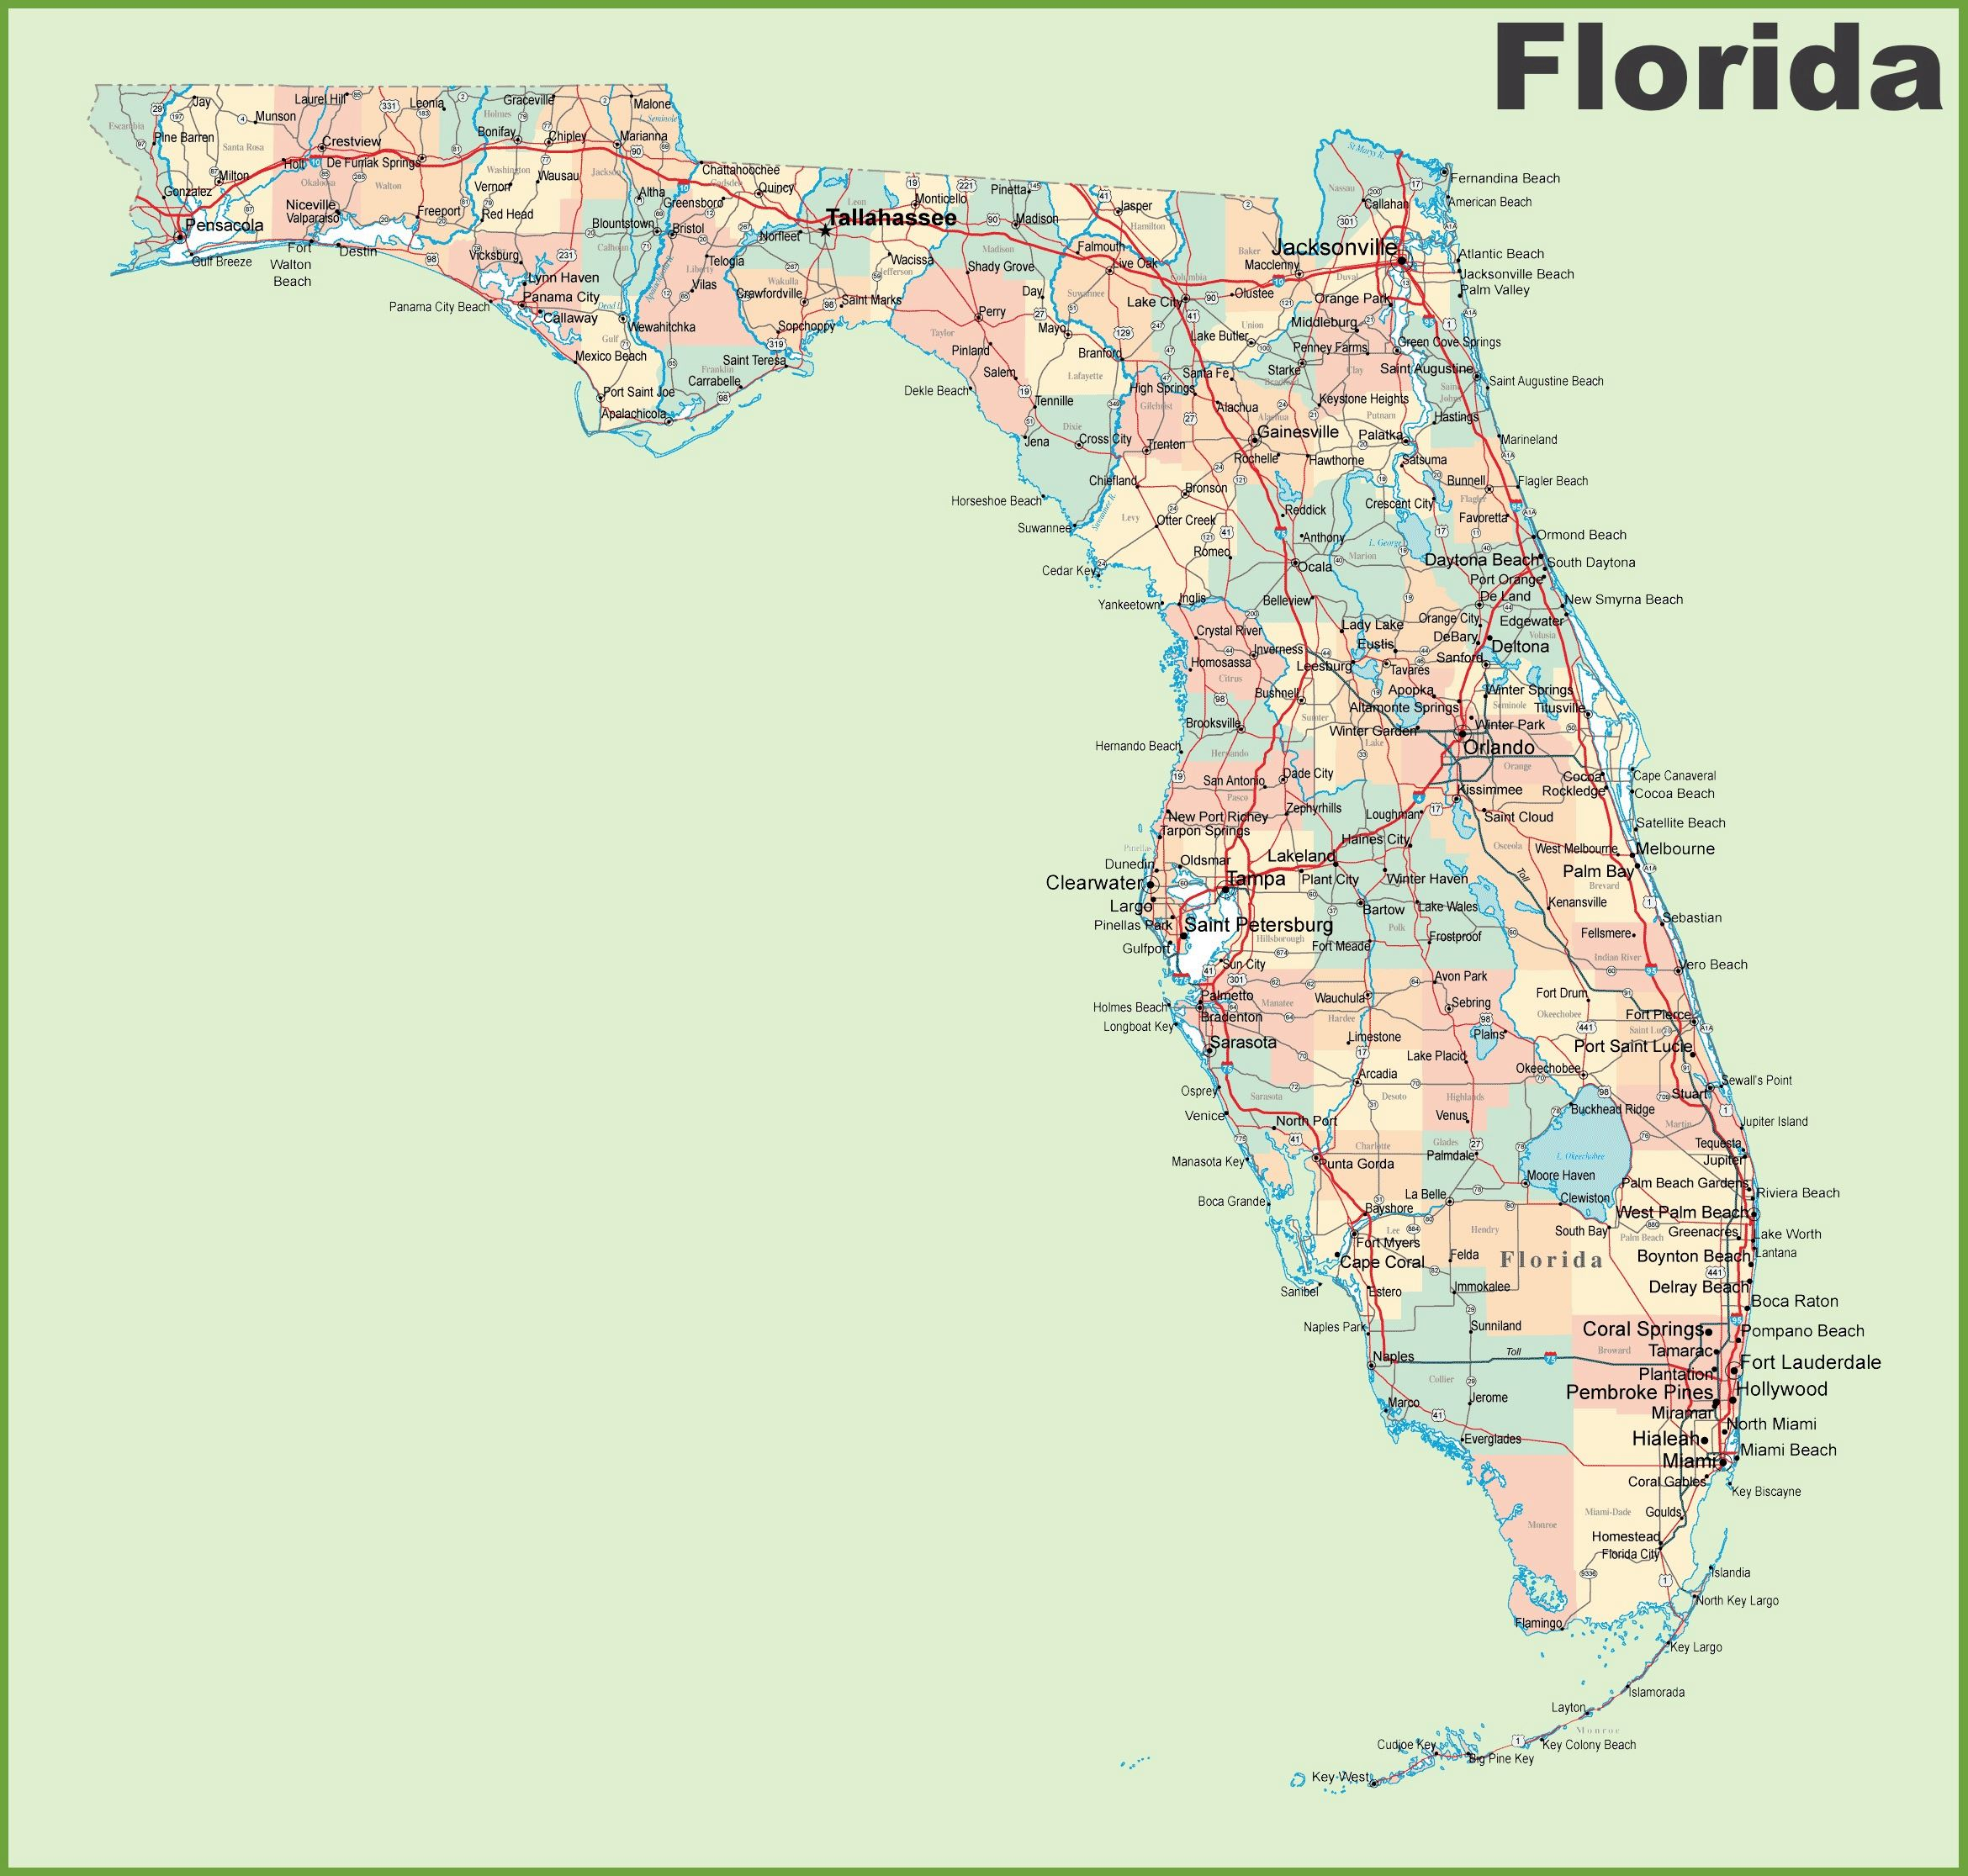 Large Florida Maps For Free Download And Print | High-Resolution And - Map Of Florida